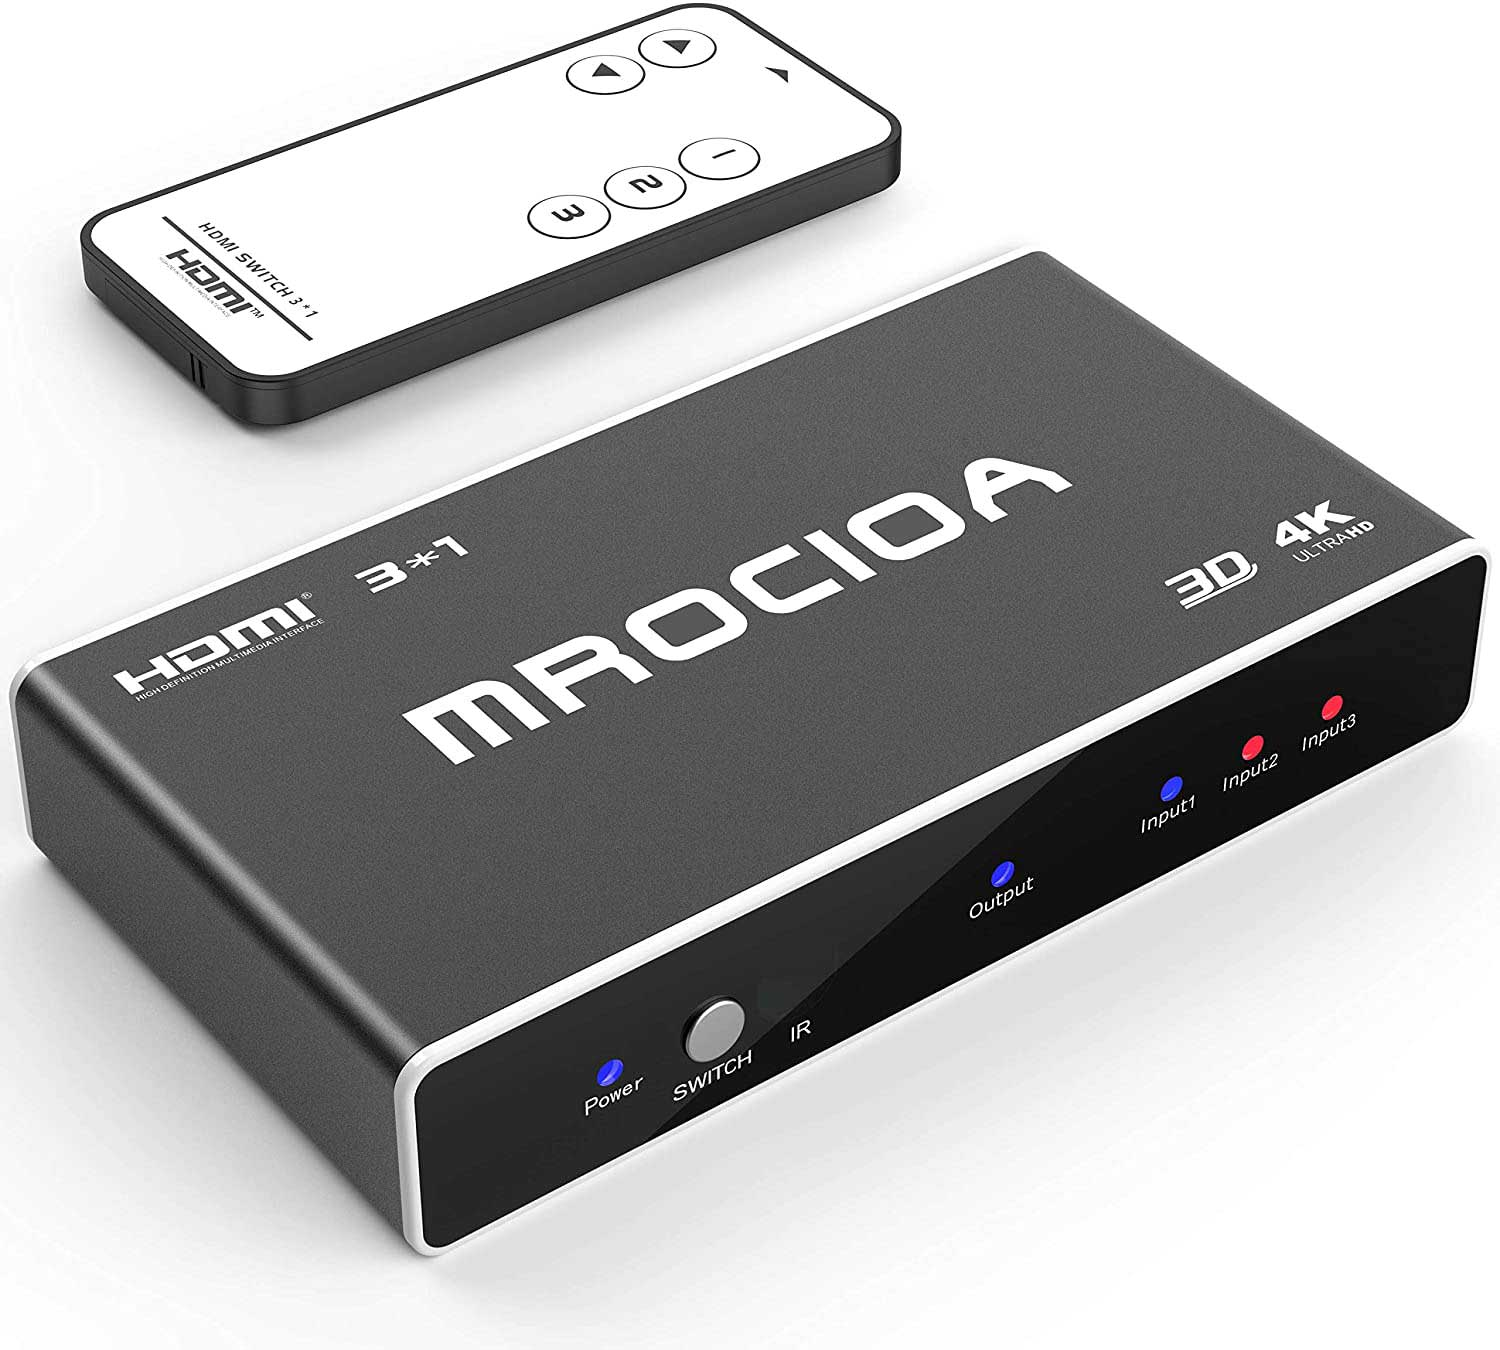 Hdmi Switch, mrocioa 3 Port input 1 out 4K Hdmi Switcher Box with Remote. Hdmi Splitter 4K Hub. Support PS4/ Xbox One/Fire TV/Apple TV/SKY BOX/STB/DVD/Laptop/Roku.